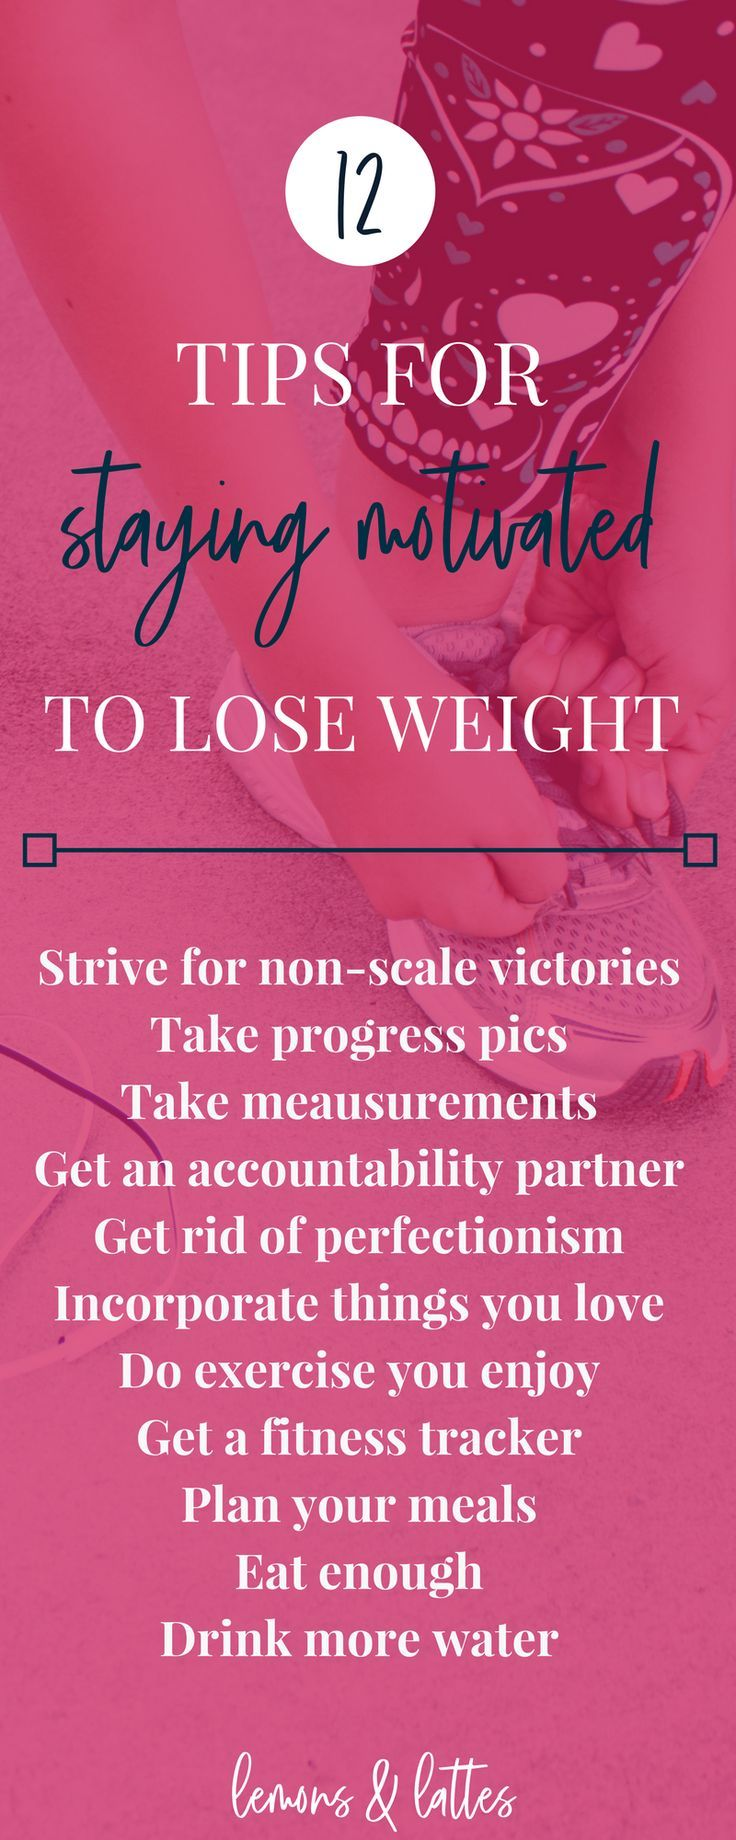 Common causes of weight loss in the elderly